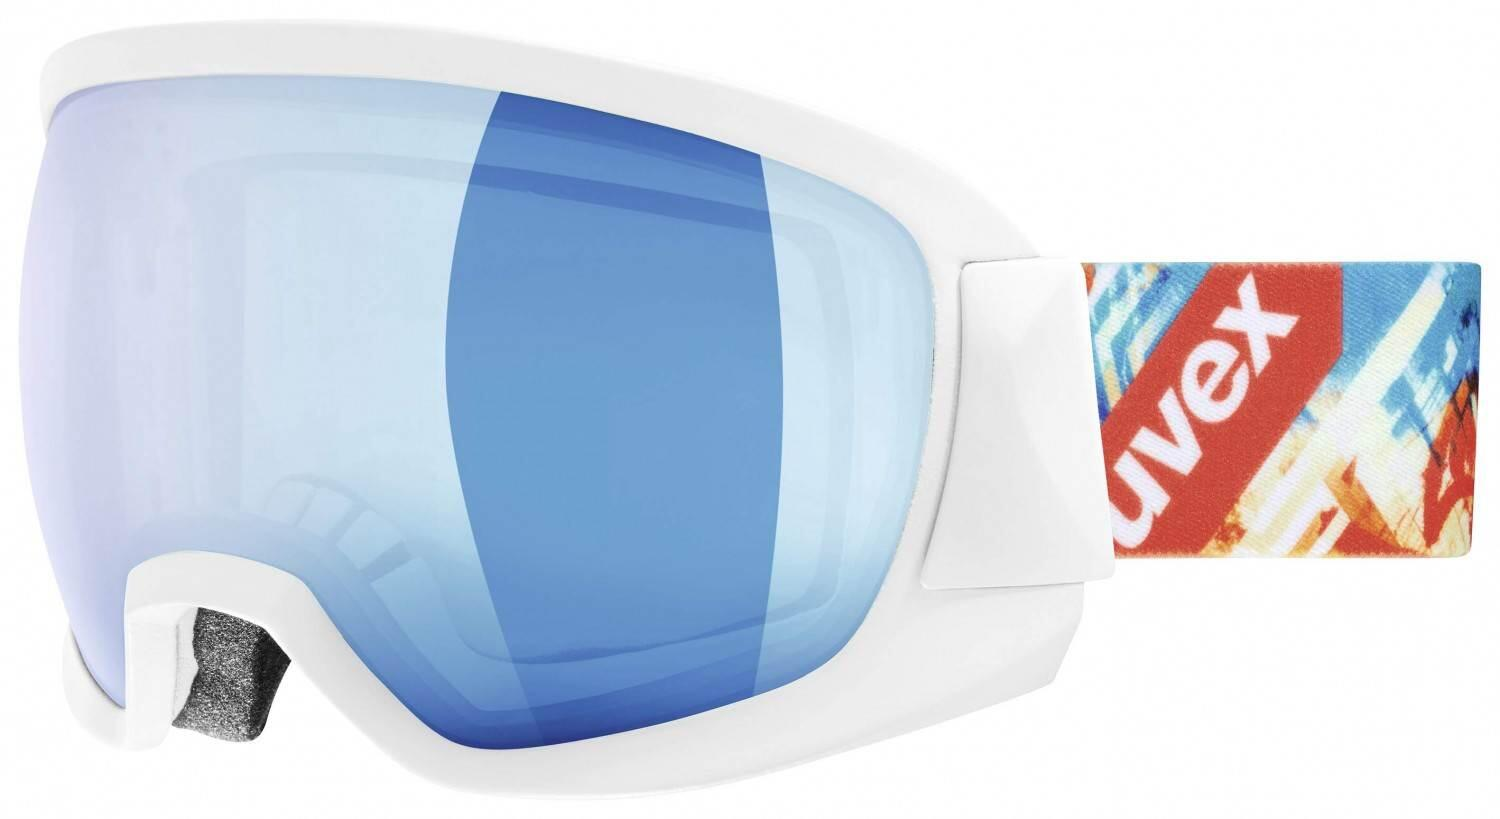 uvex-contest-full-mirror-skibrille-farbe-1126-white-mat-mirror-blue-clear-s2-